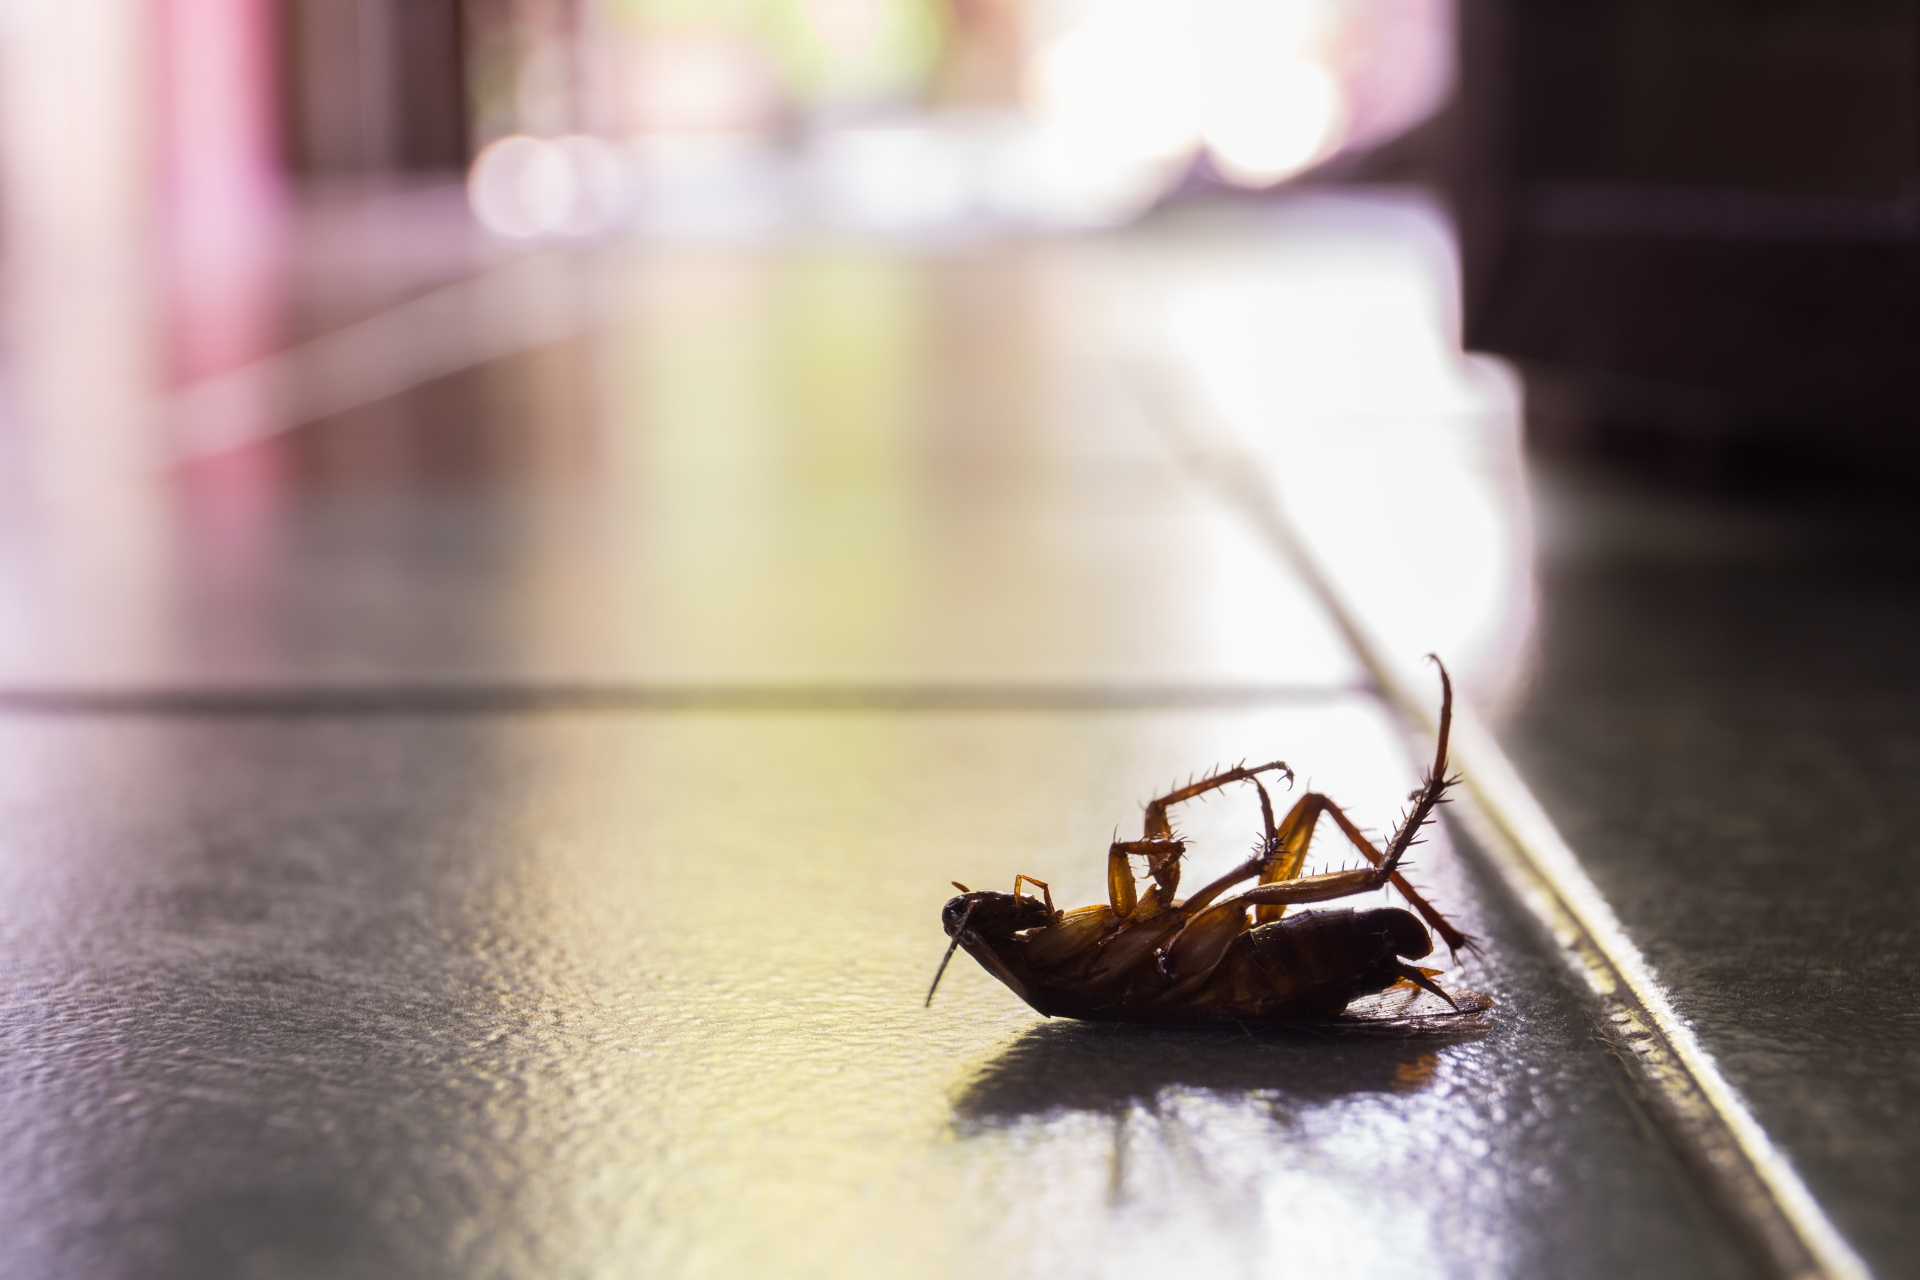 Cockroach Control, Pest Control in Caterham, Chaldon, Woldingham, CR3. Call Now 020 8166 9746